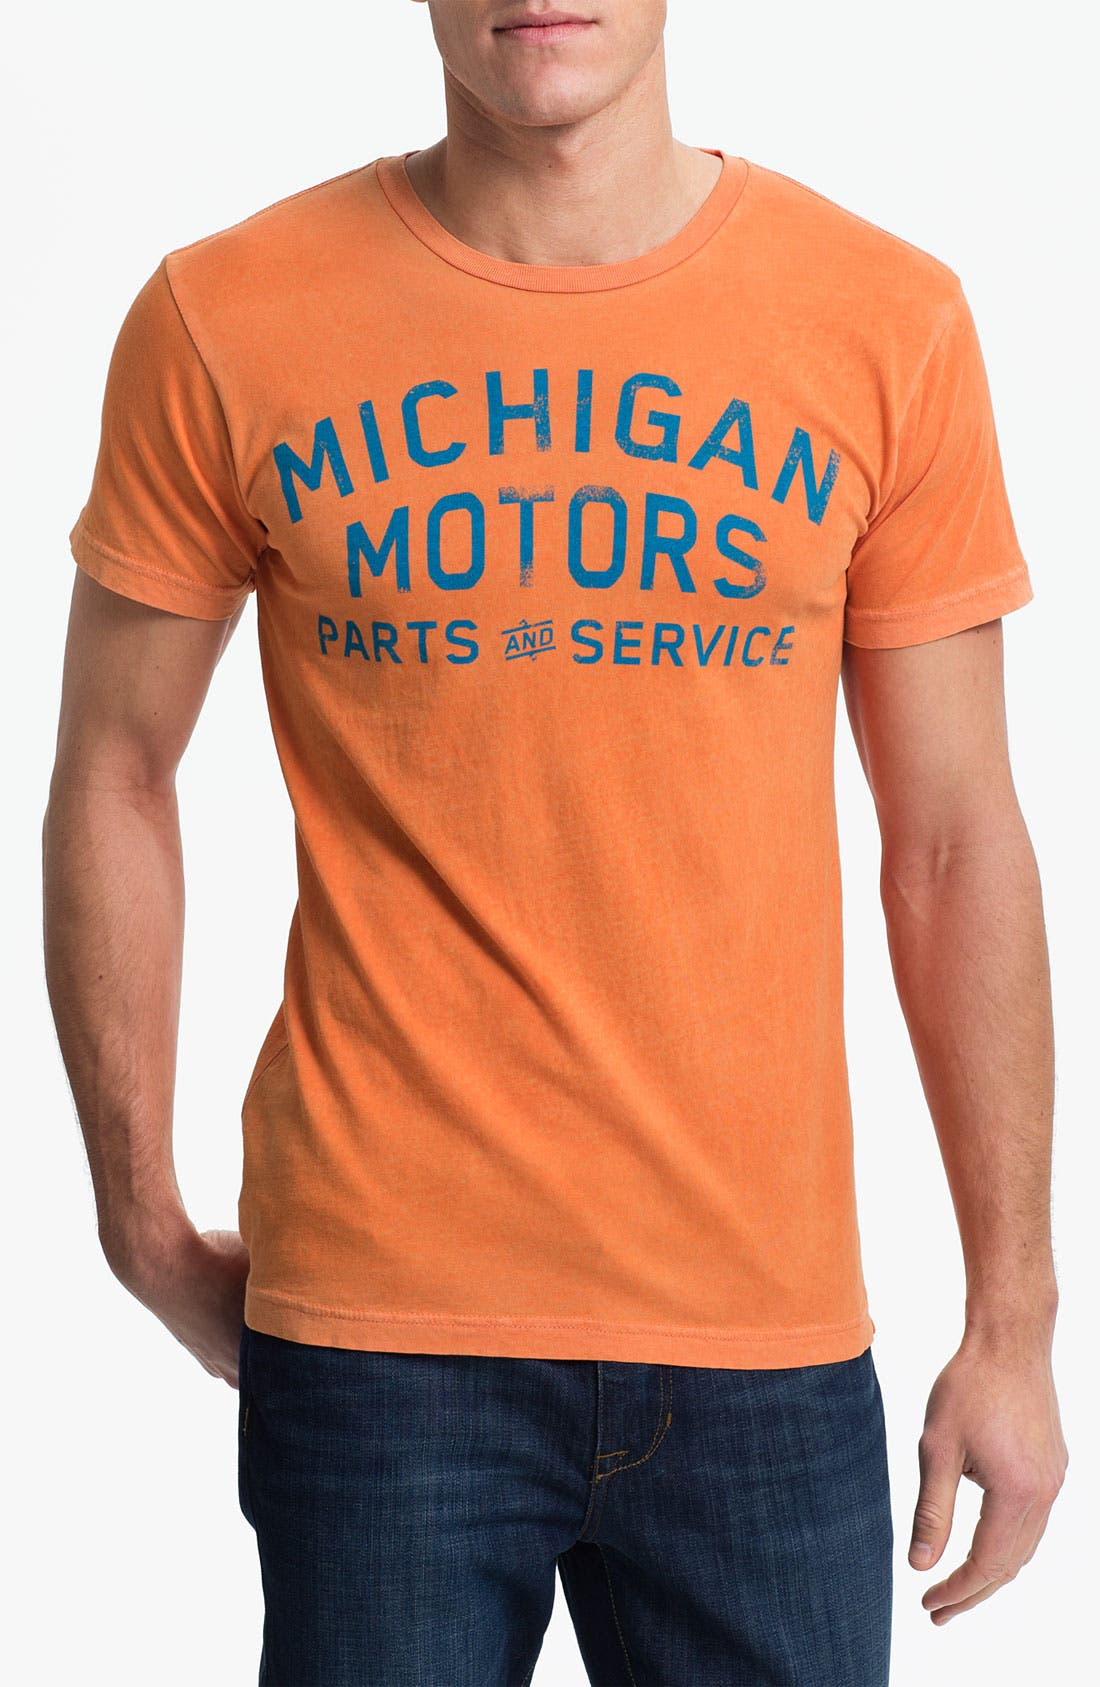 Alternate Image 1 Selected - Denim & Leathers by Andrew Marc 'Michigan Motors' Graphic T-Shirt